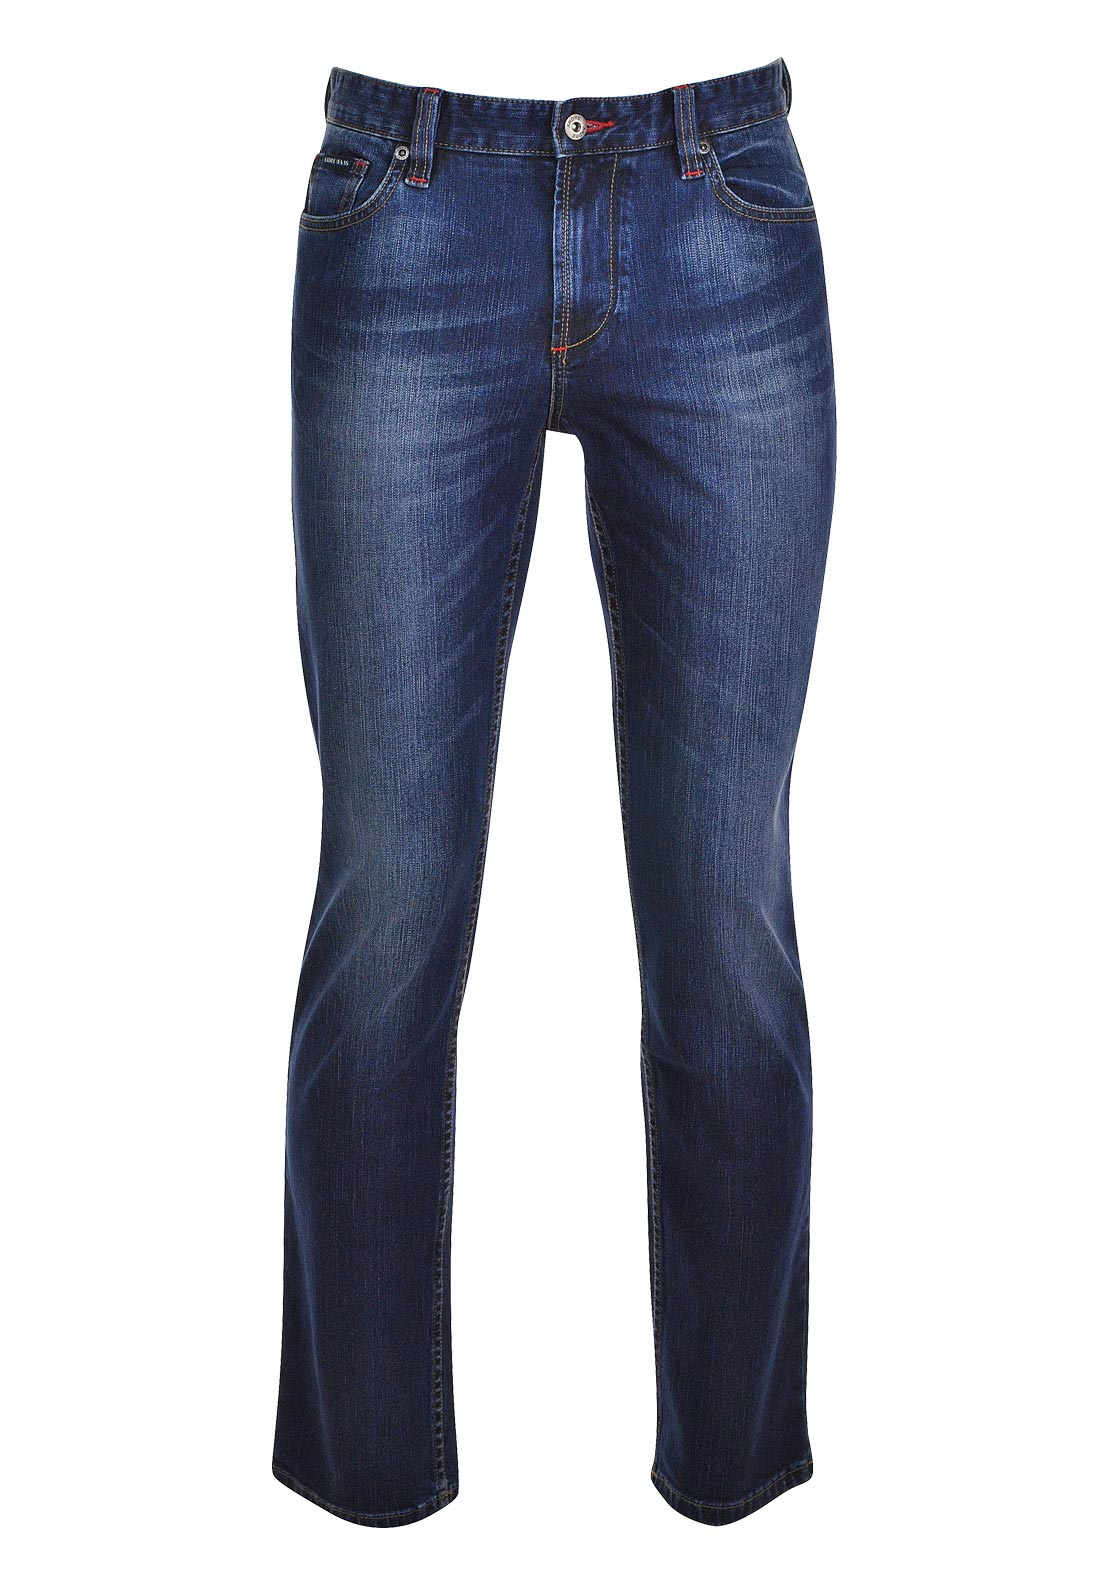 Andre Mens Suarez Comfort Fit Jeans Denim